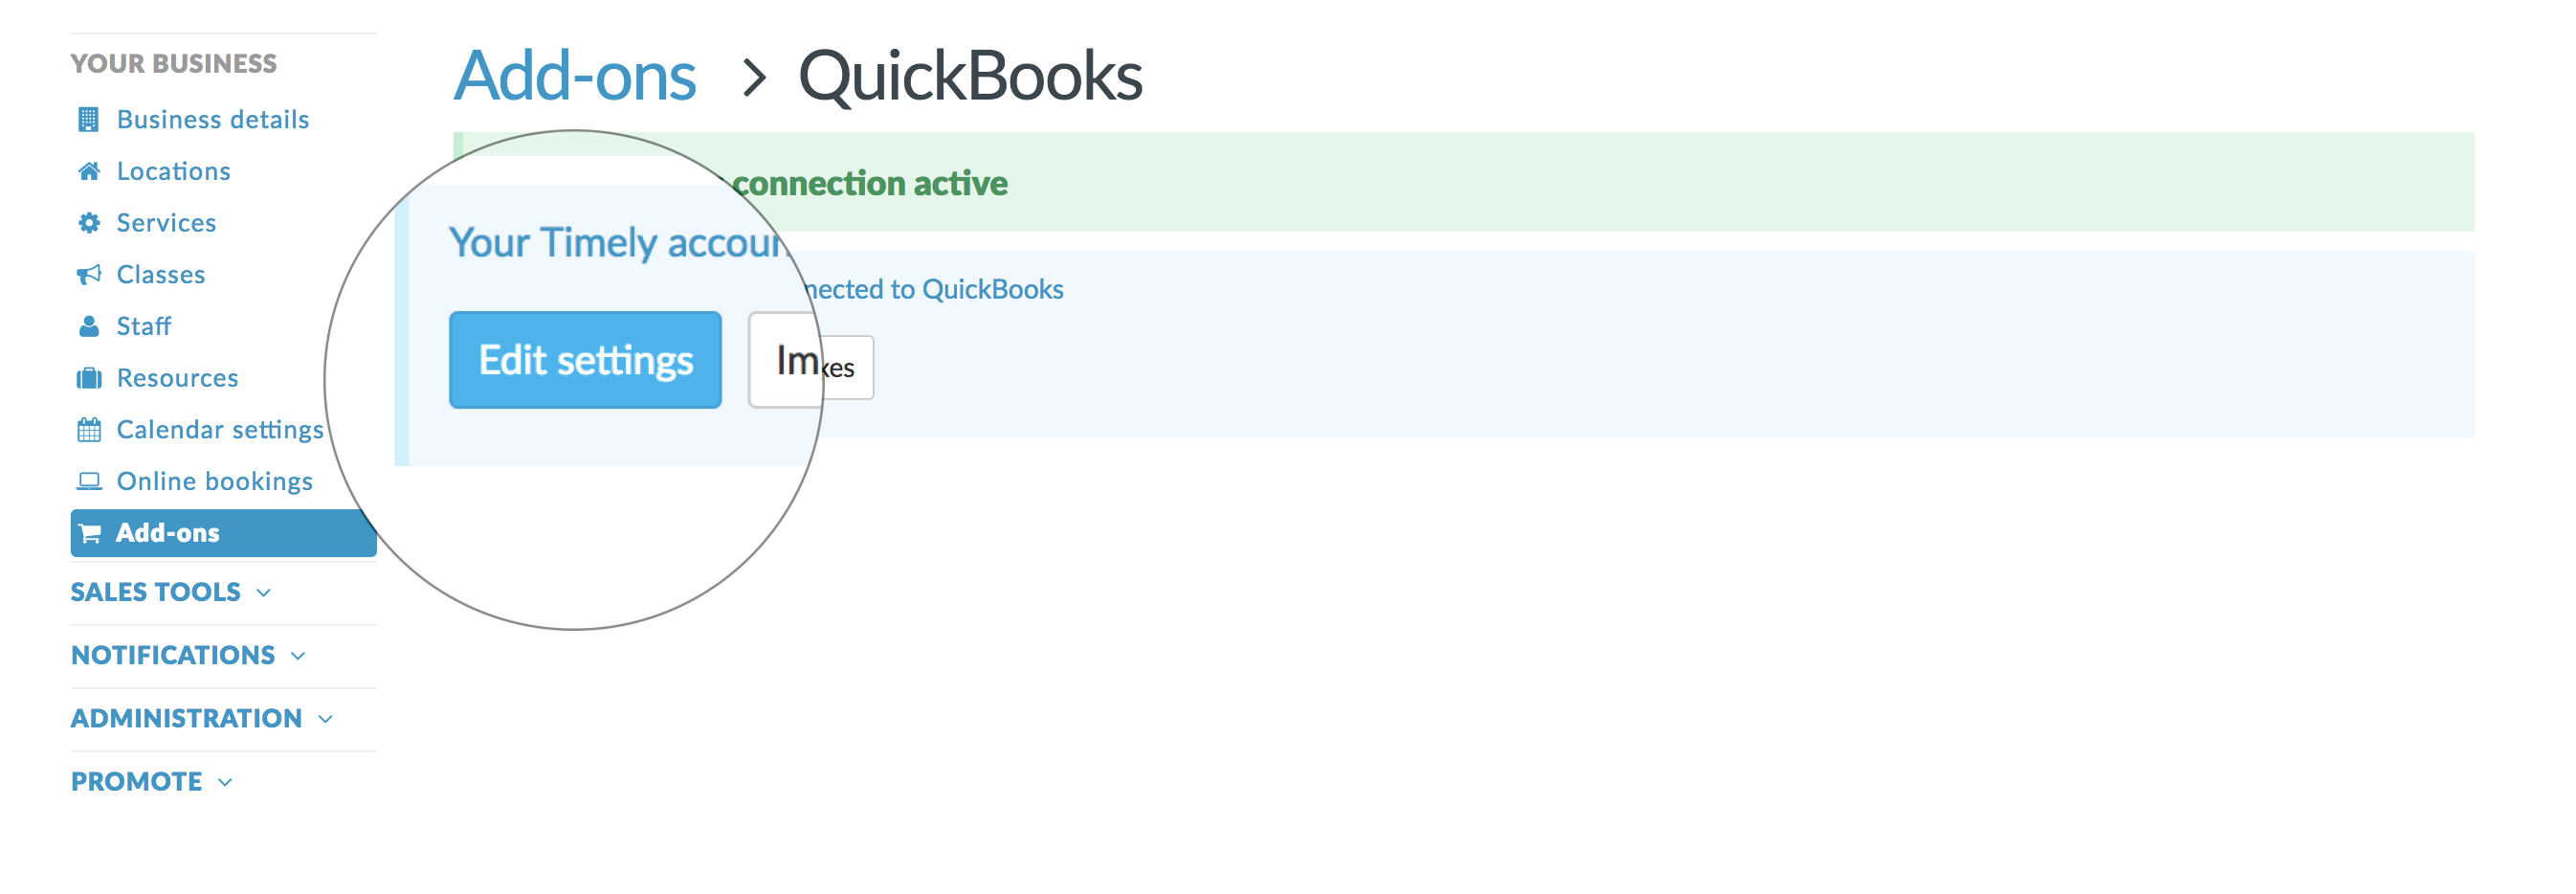 How To Adjust Your Quickbooks Online Settings Timely Help Docs - Quickbooks invoice online